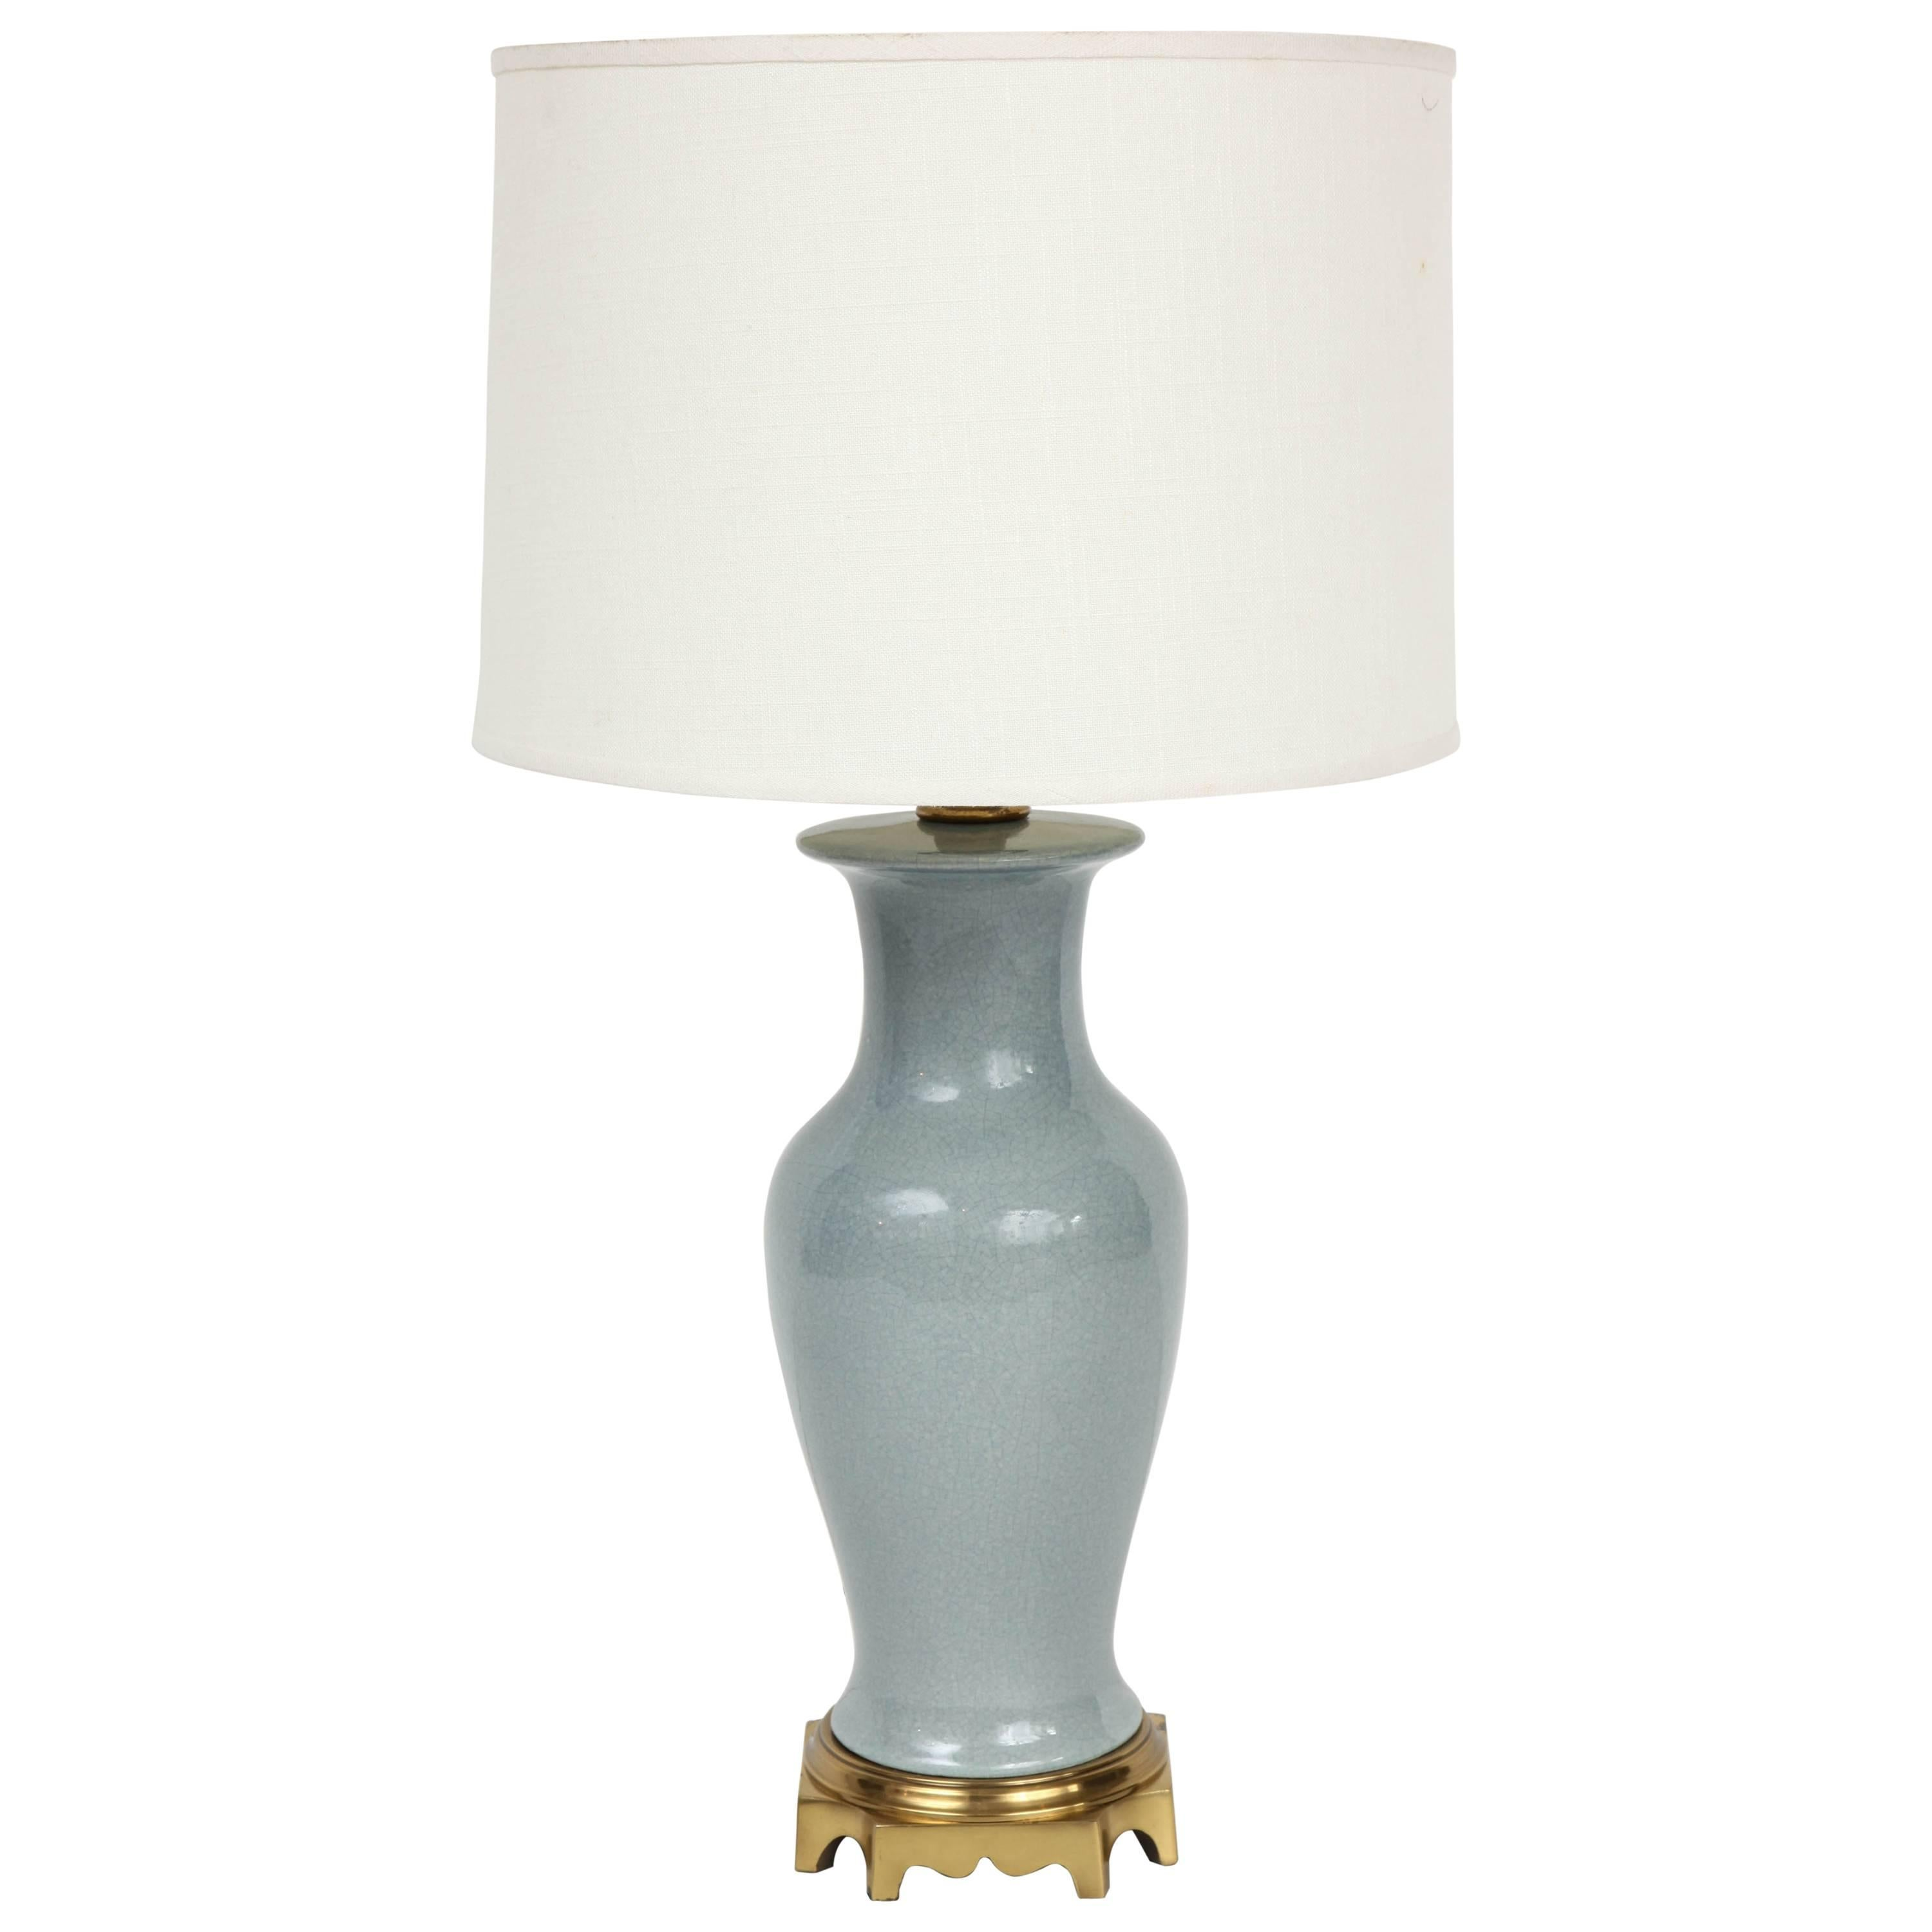 1940s Blue Porcelain Table Lamp By Paul Hanson For Sale At 1stdibs